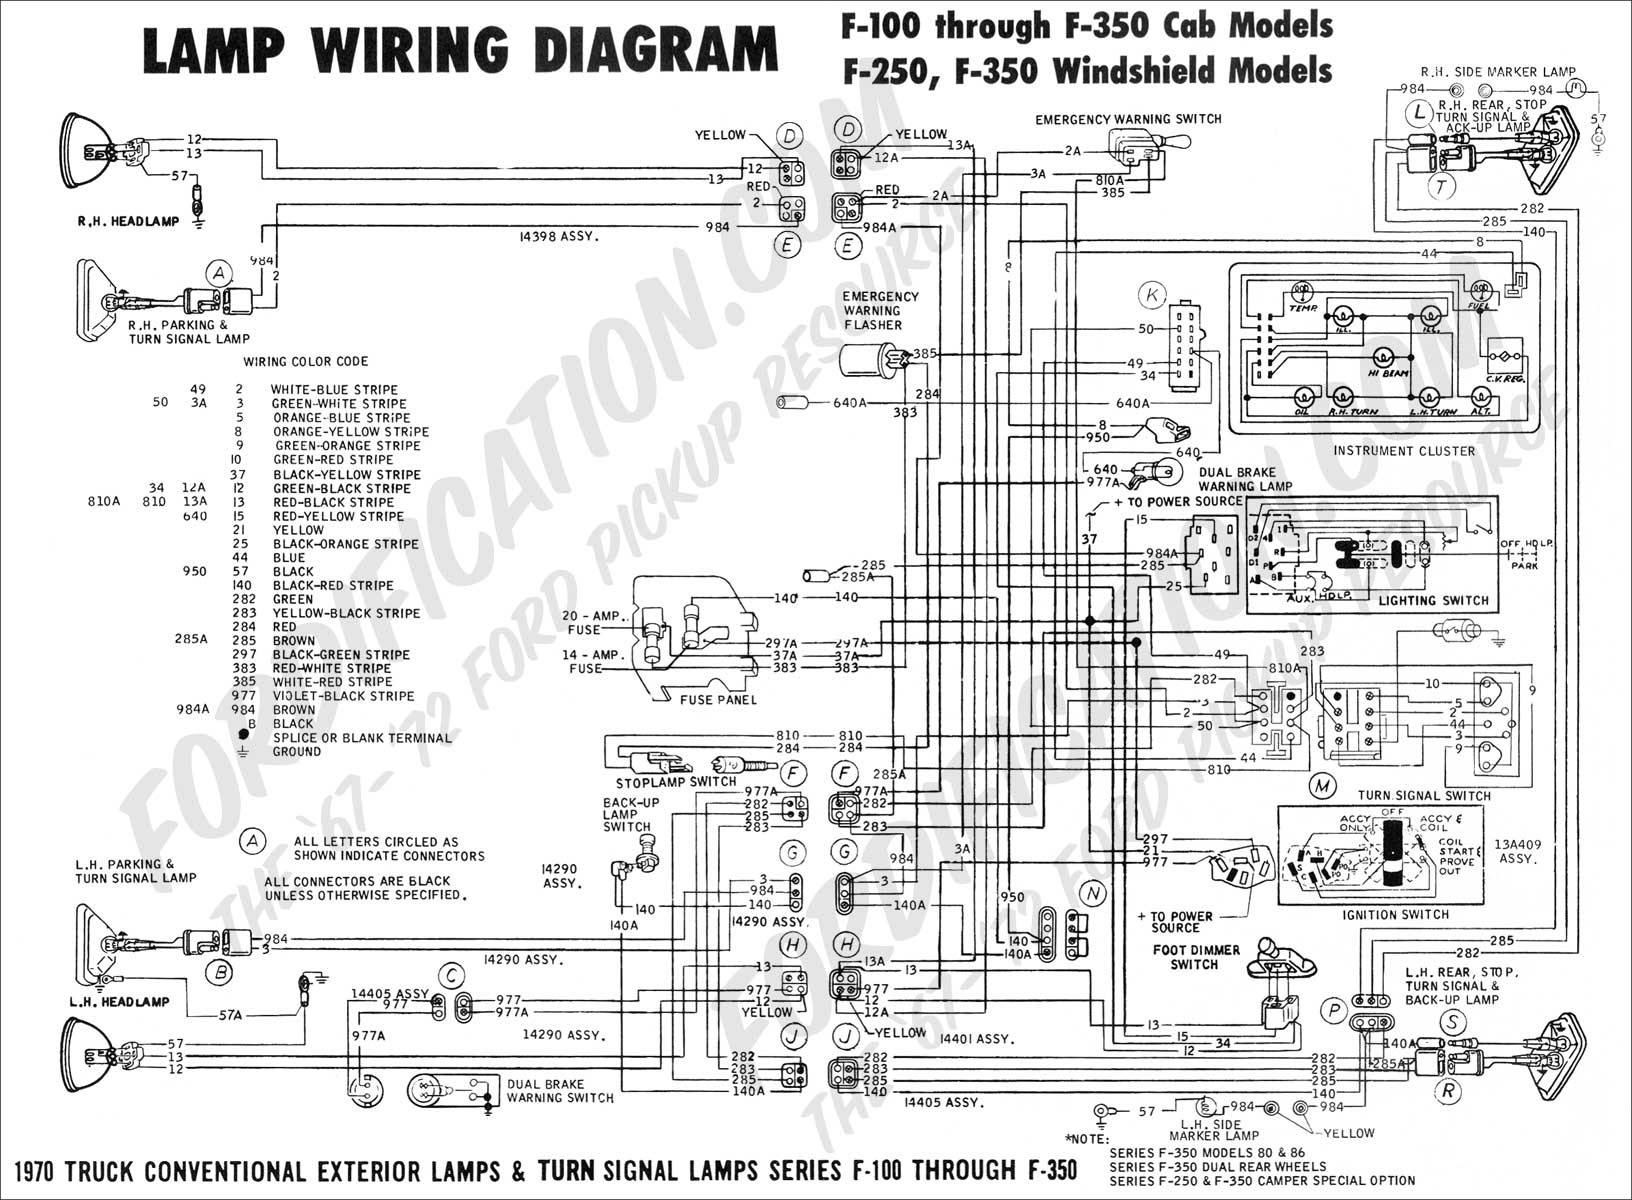 97 ford ranger engine diagram wiring diagram 93 ford f700 wiring rh detoxicrecenze com Ford F800 Wiring Schematic Ford F700 Fuel Wiring Diagram